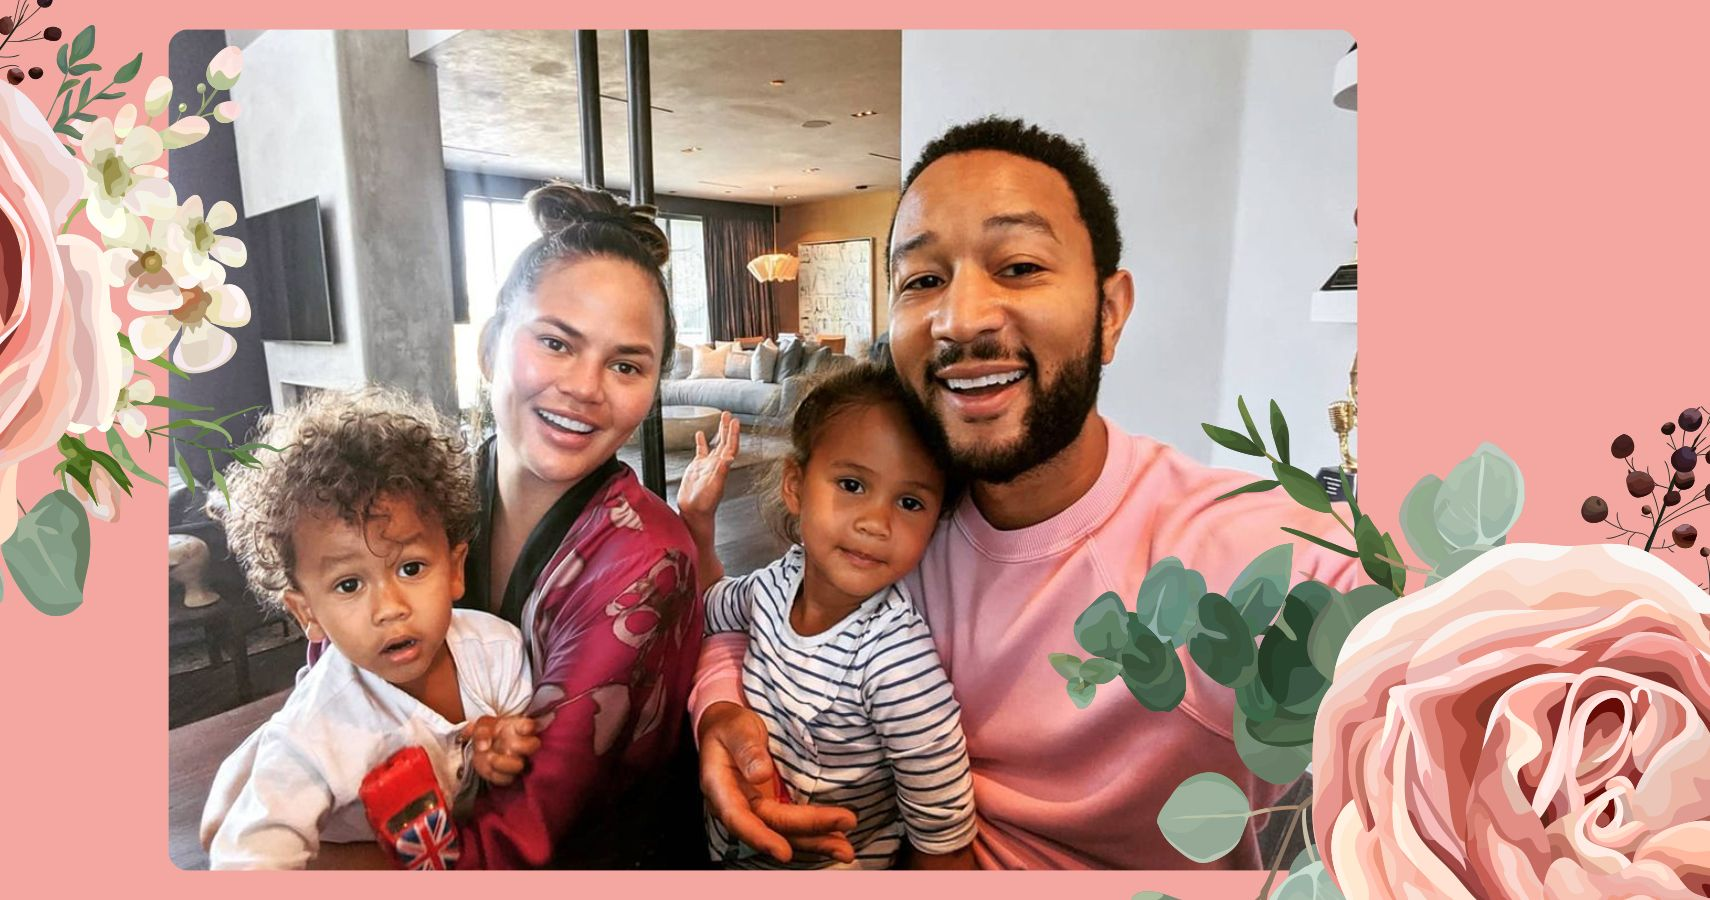 John Legend Speaks About How The Family Is Getting Through Loss Together